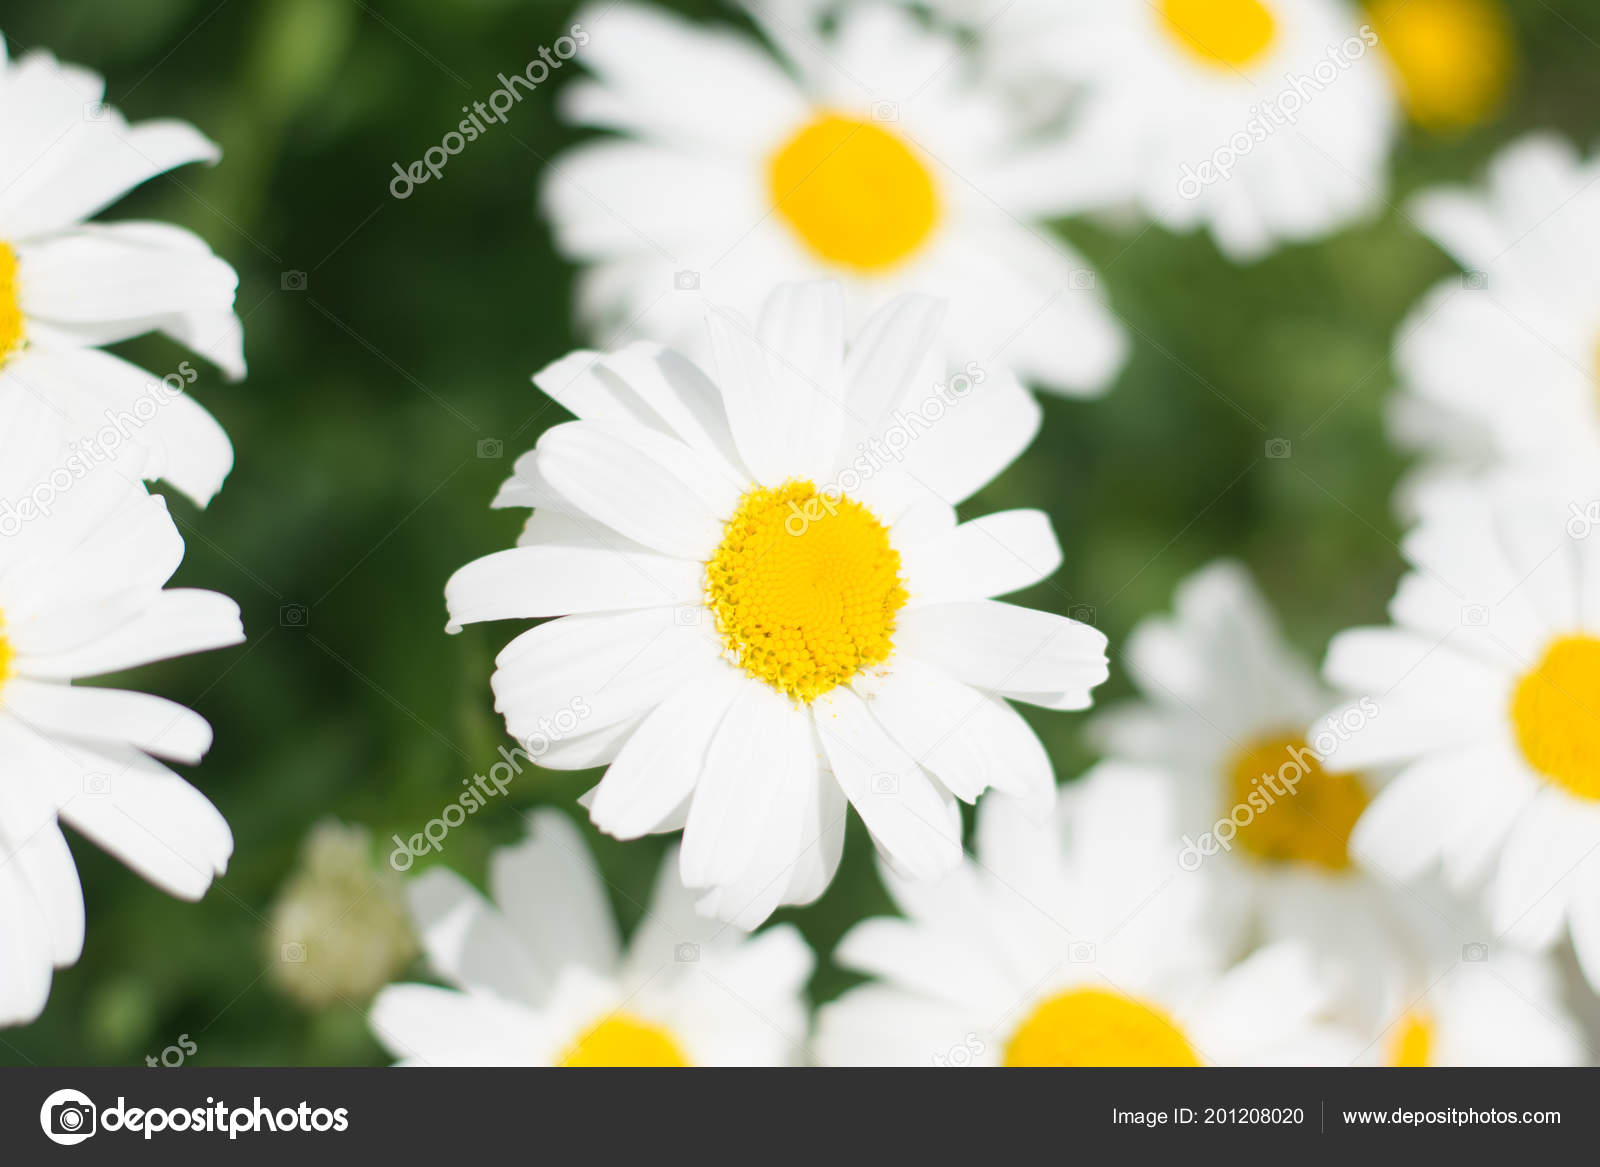 Field full daisies green leaves one focus stock photo lucyrock a field full of daisies with green leaves one in focus photo by lucyrock izmirmasajfo